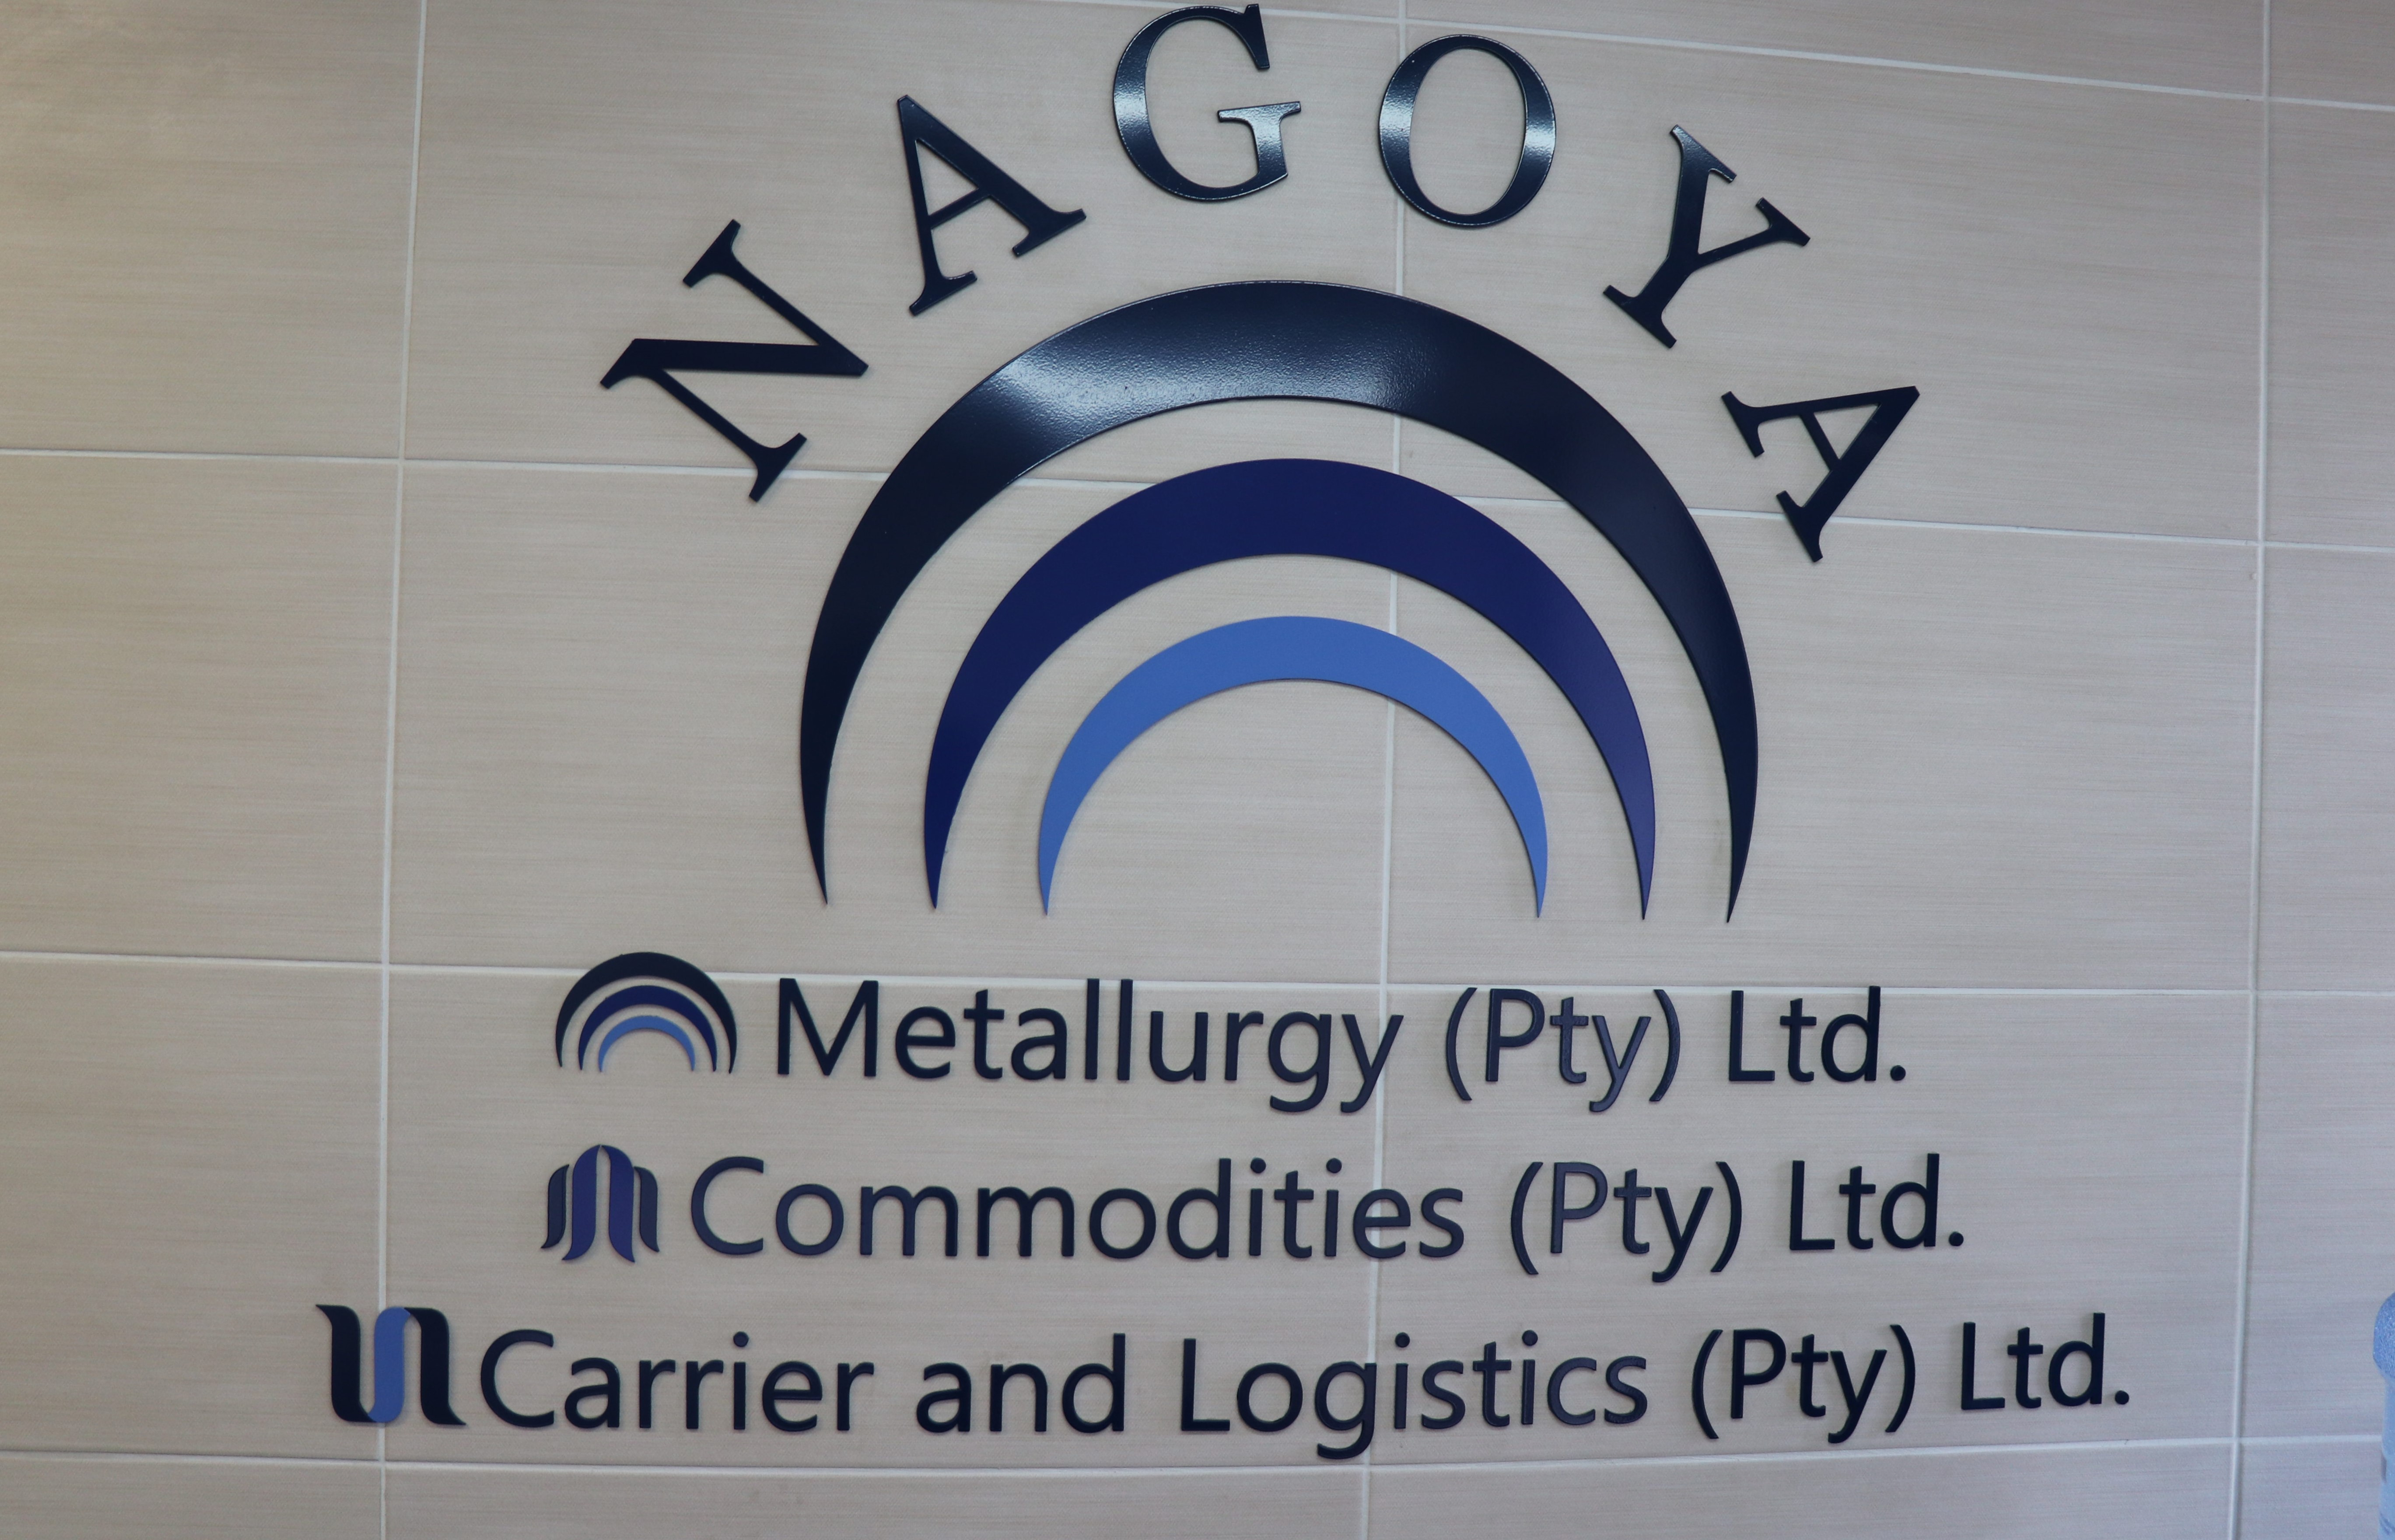 Contact us | Nagoya Metallurgy